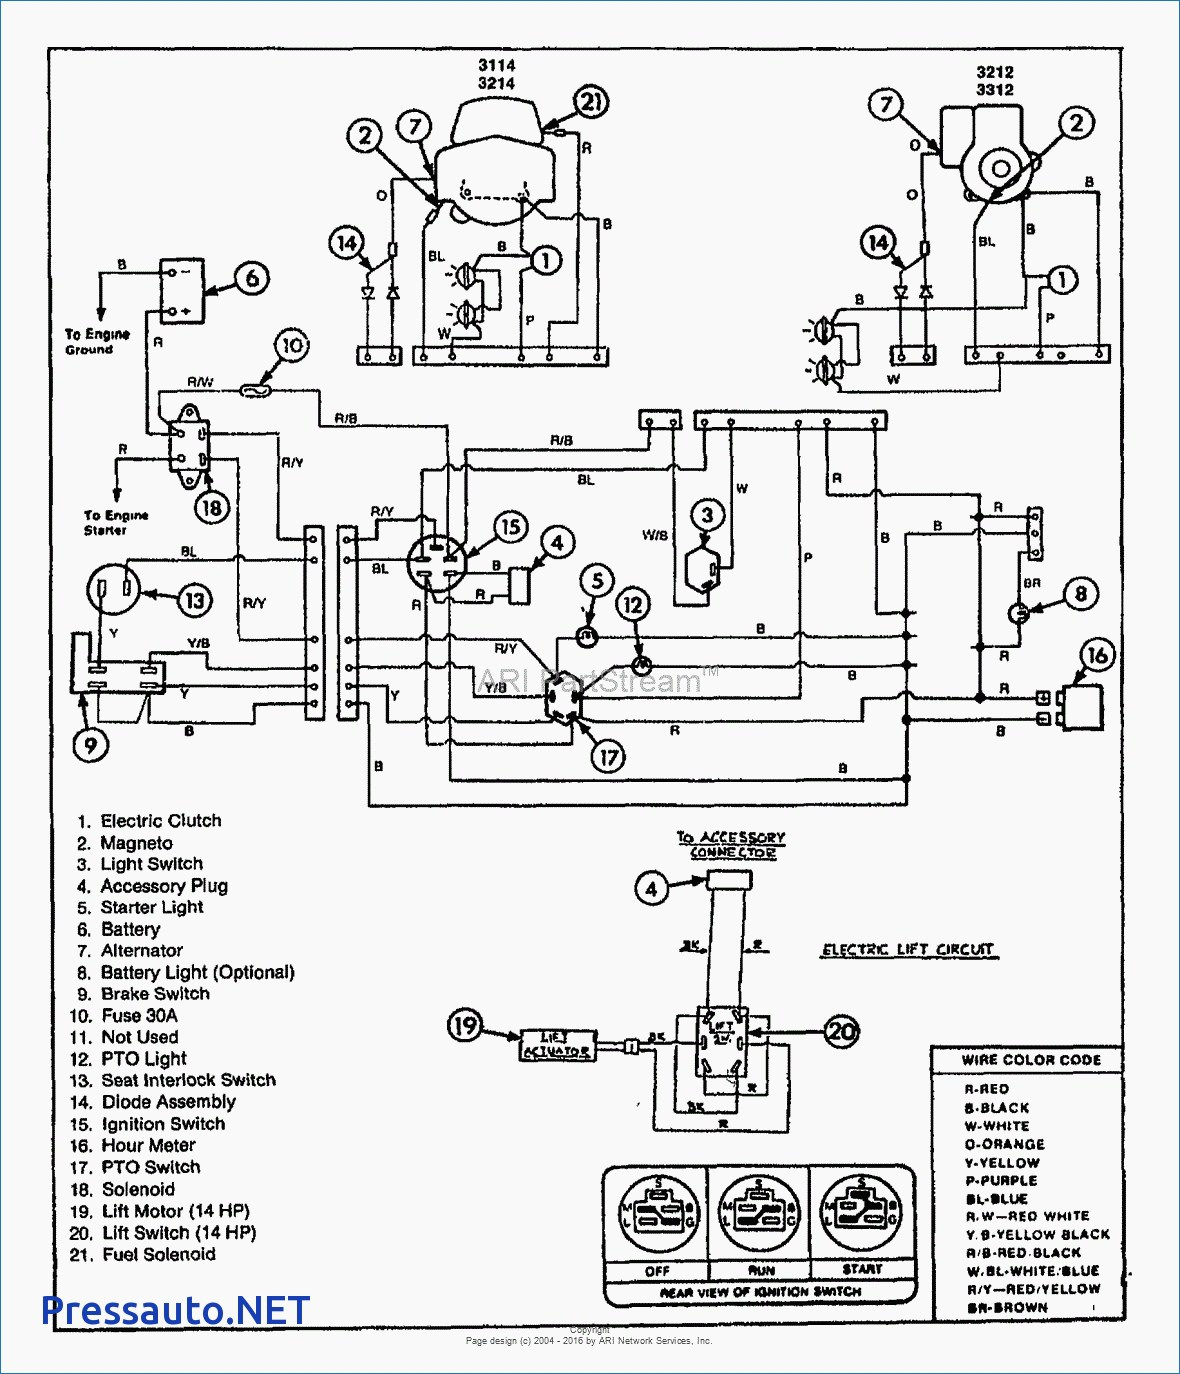 hight resolution of 30a 250v plug wiring diagram 30a 250v plug wiring diagram unique cool nema l6 20r